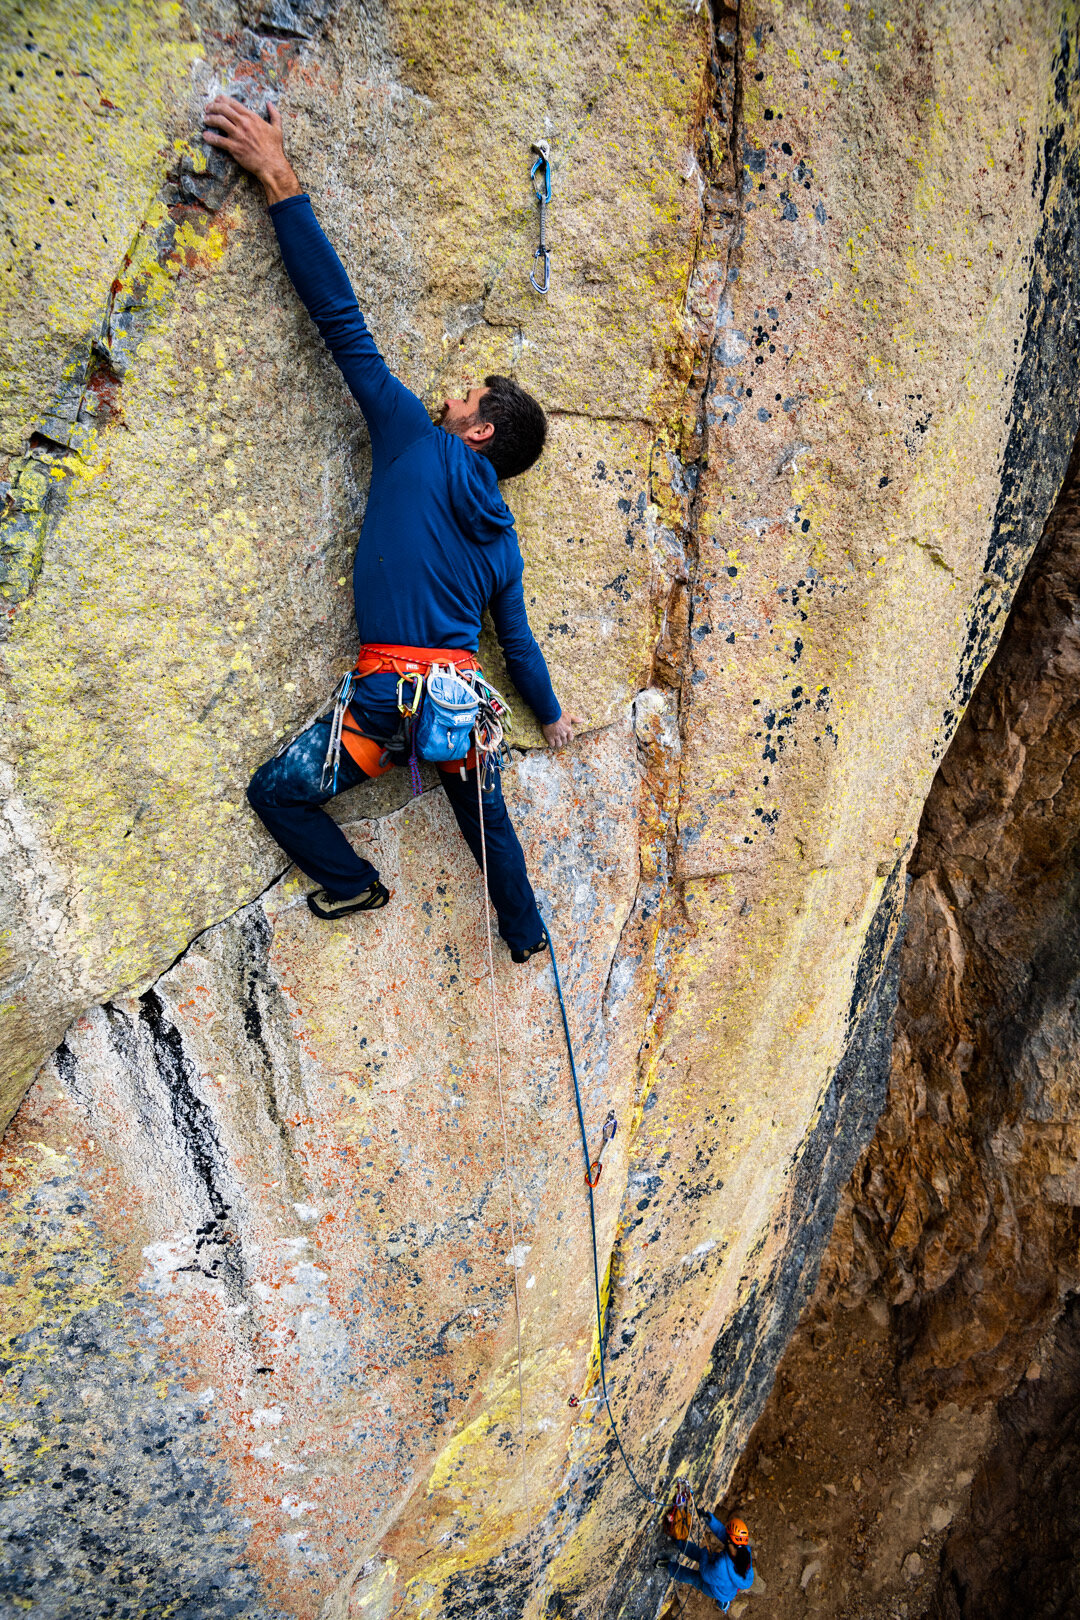 Mikey working through sculpted crystal pinches on the amazing 2nd pitch. Photo Austin Siadak.